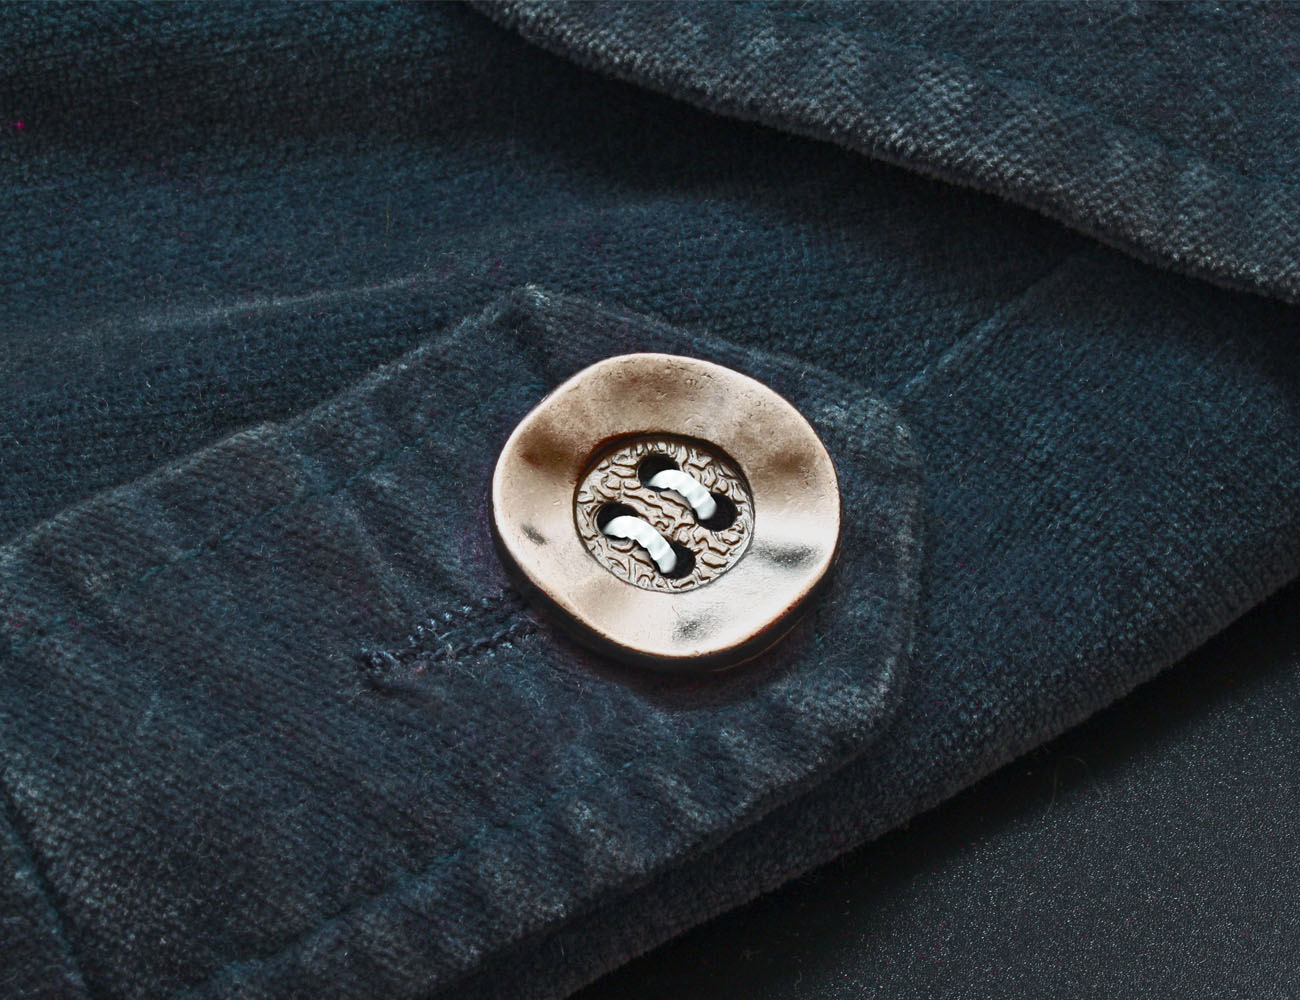 FastButton Needleless Sew Button